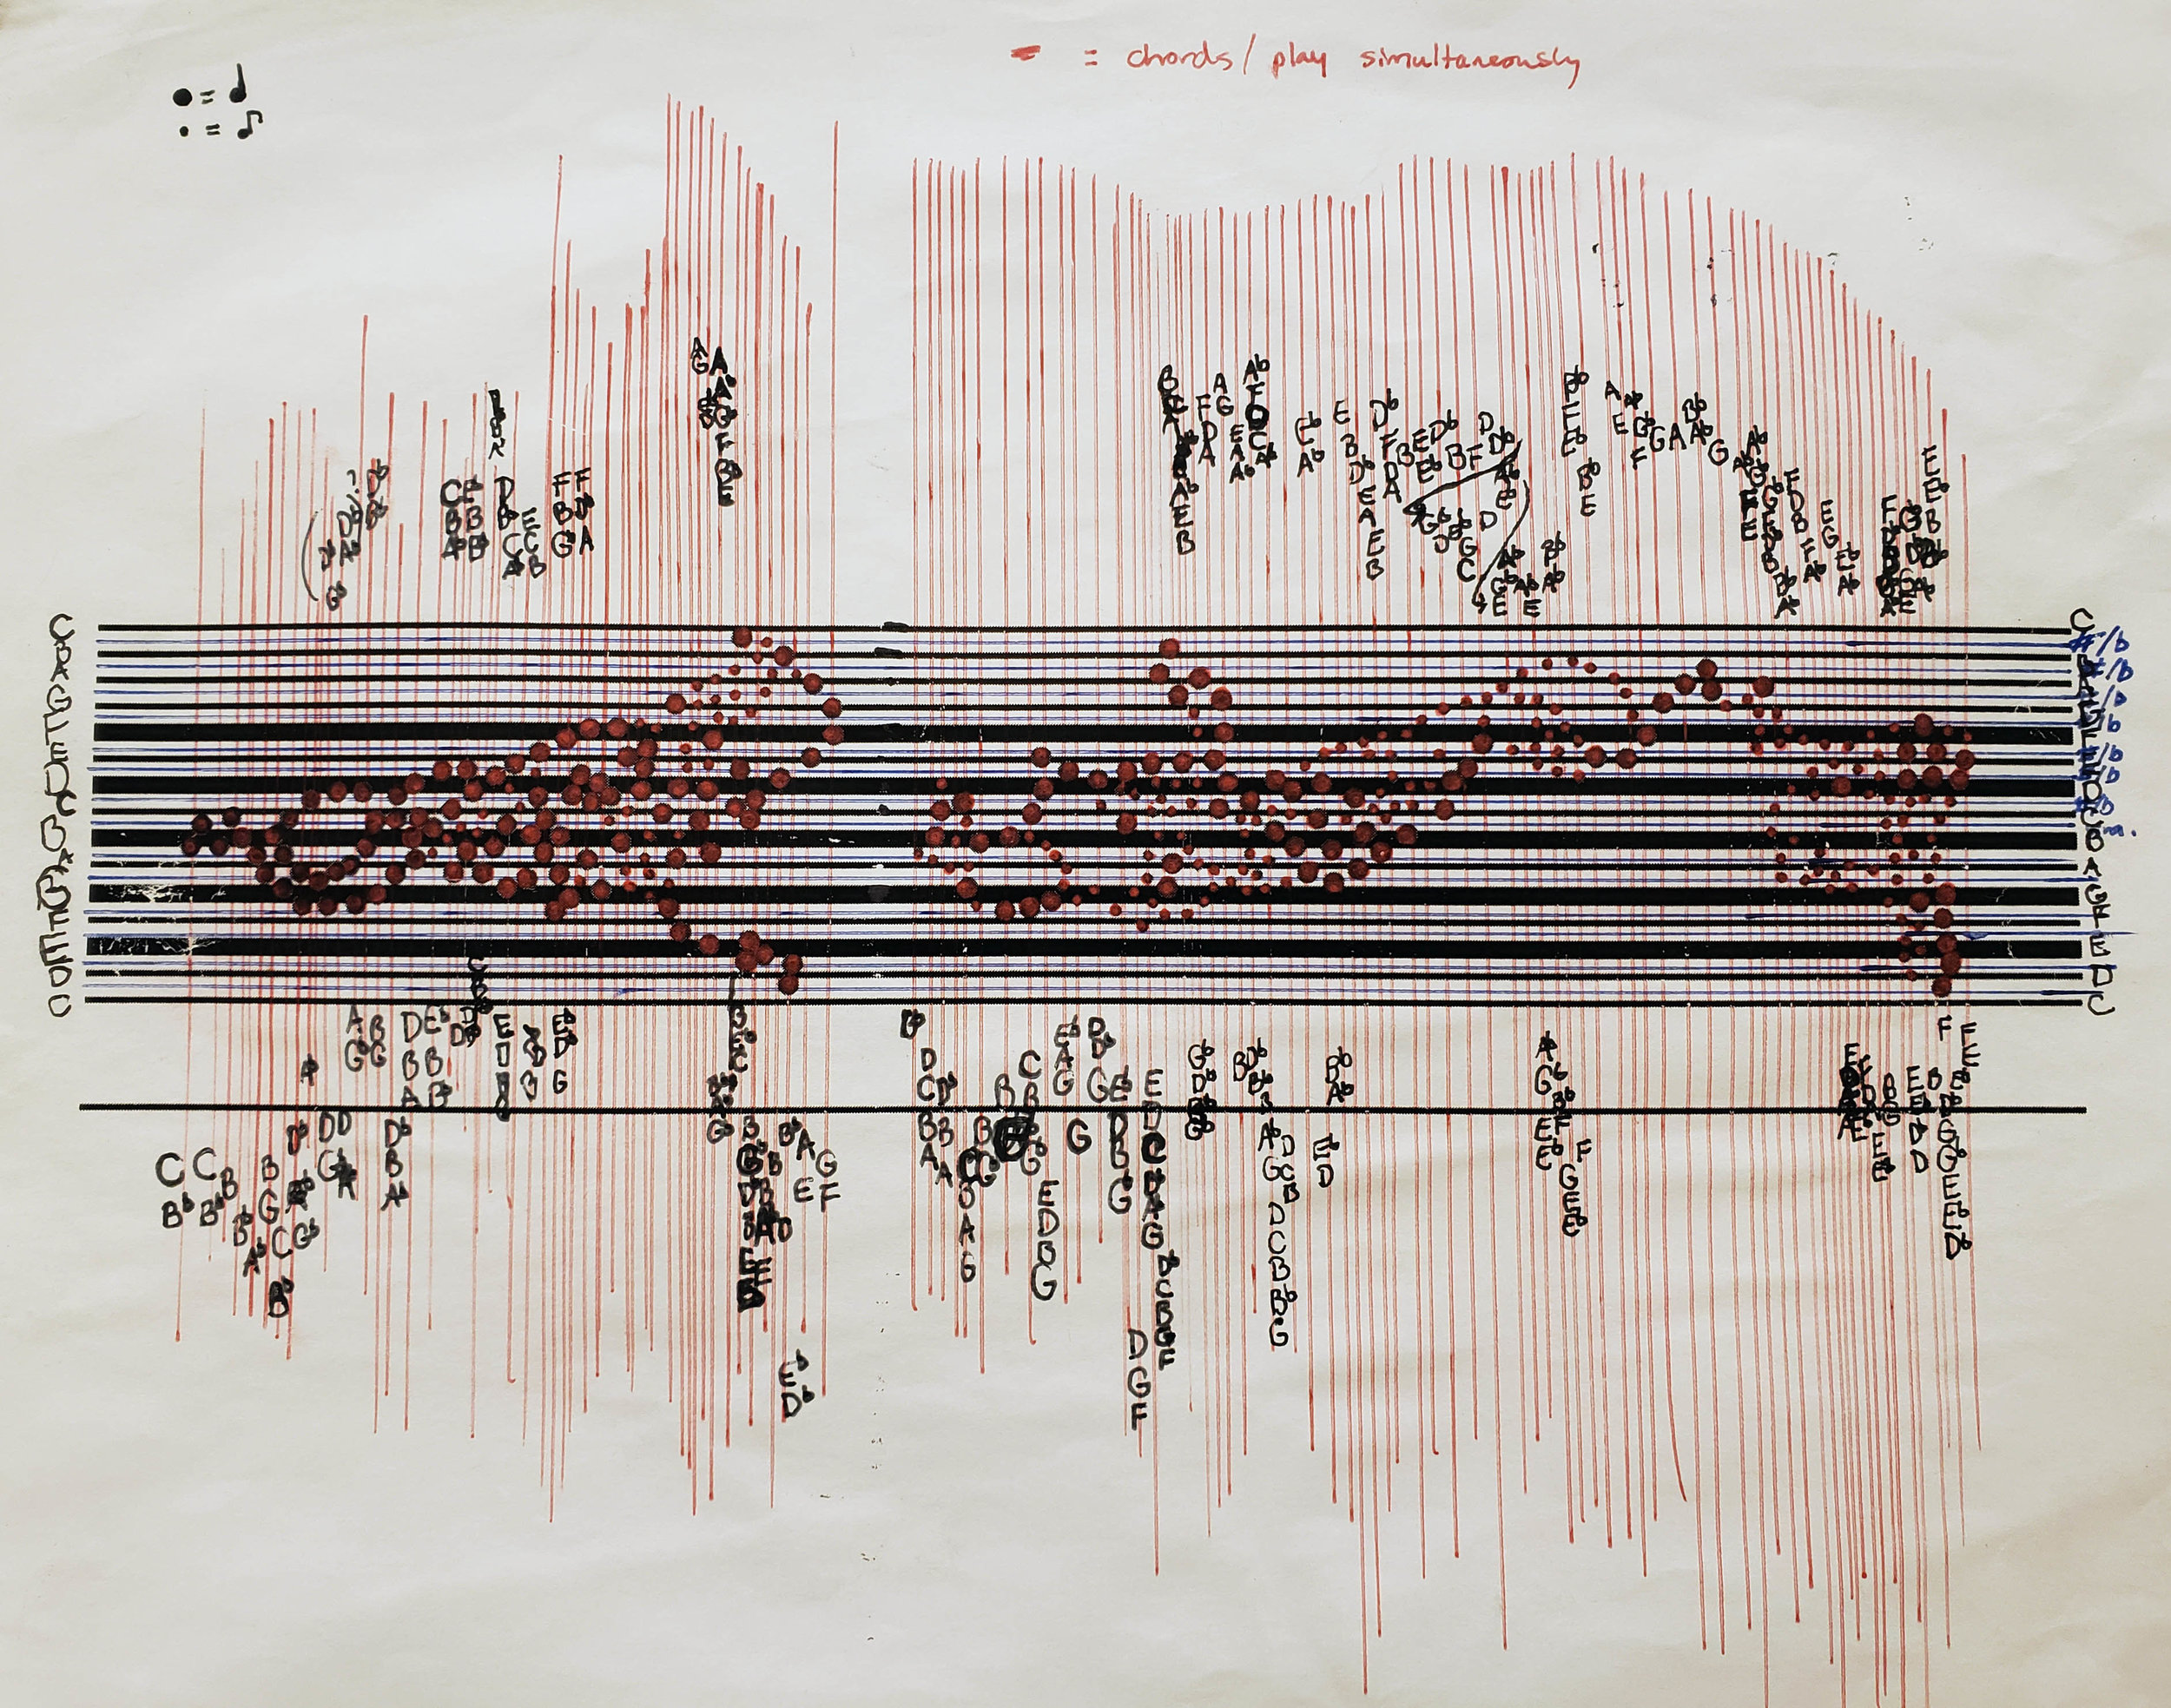 Image of Erin's drawing being placed into her music notation matrix.